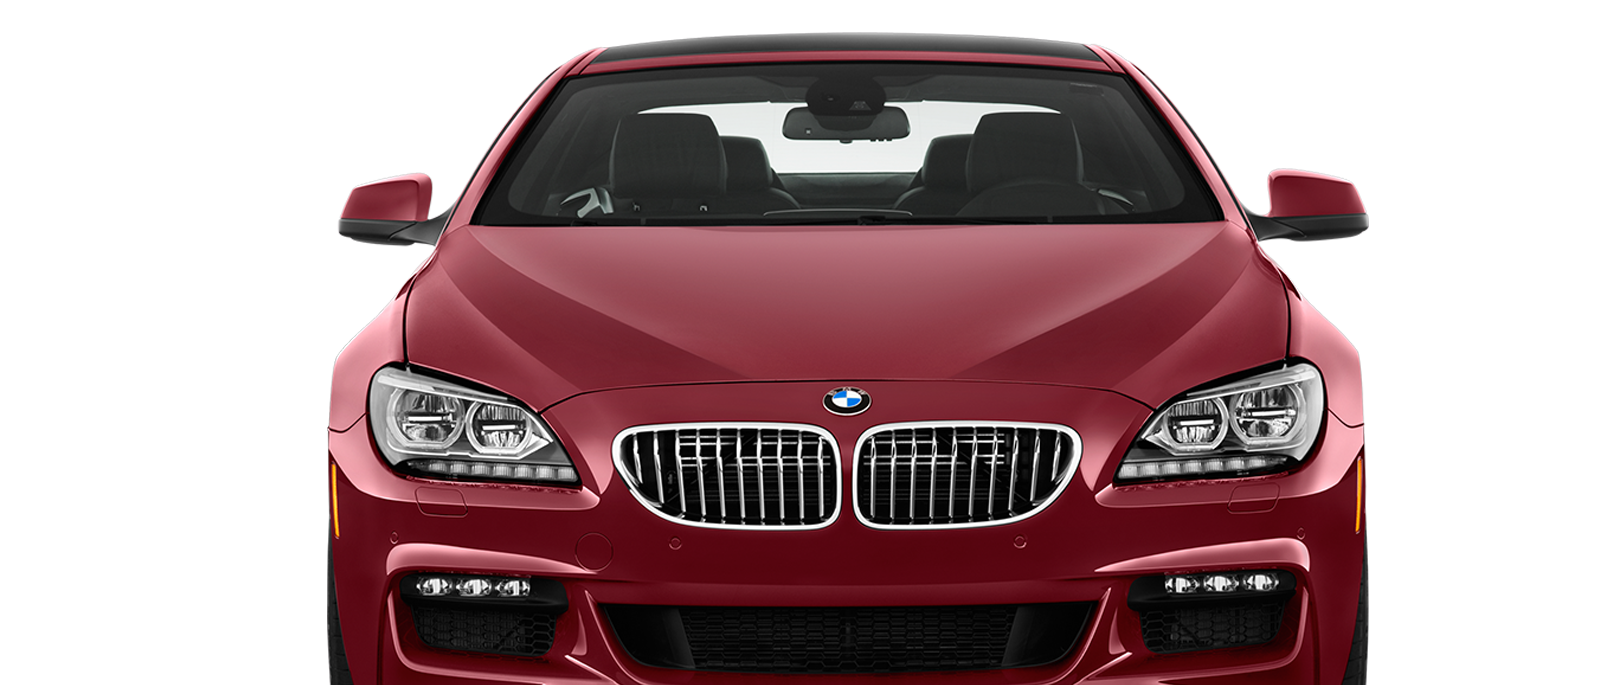 bmw 650i car rental exotic car collection by enterprise. Black Bedroom Furniture Sets. Home Design Ideas